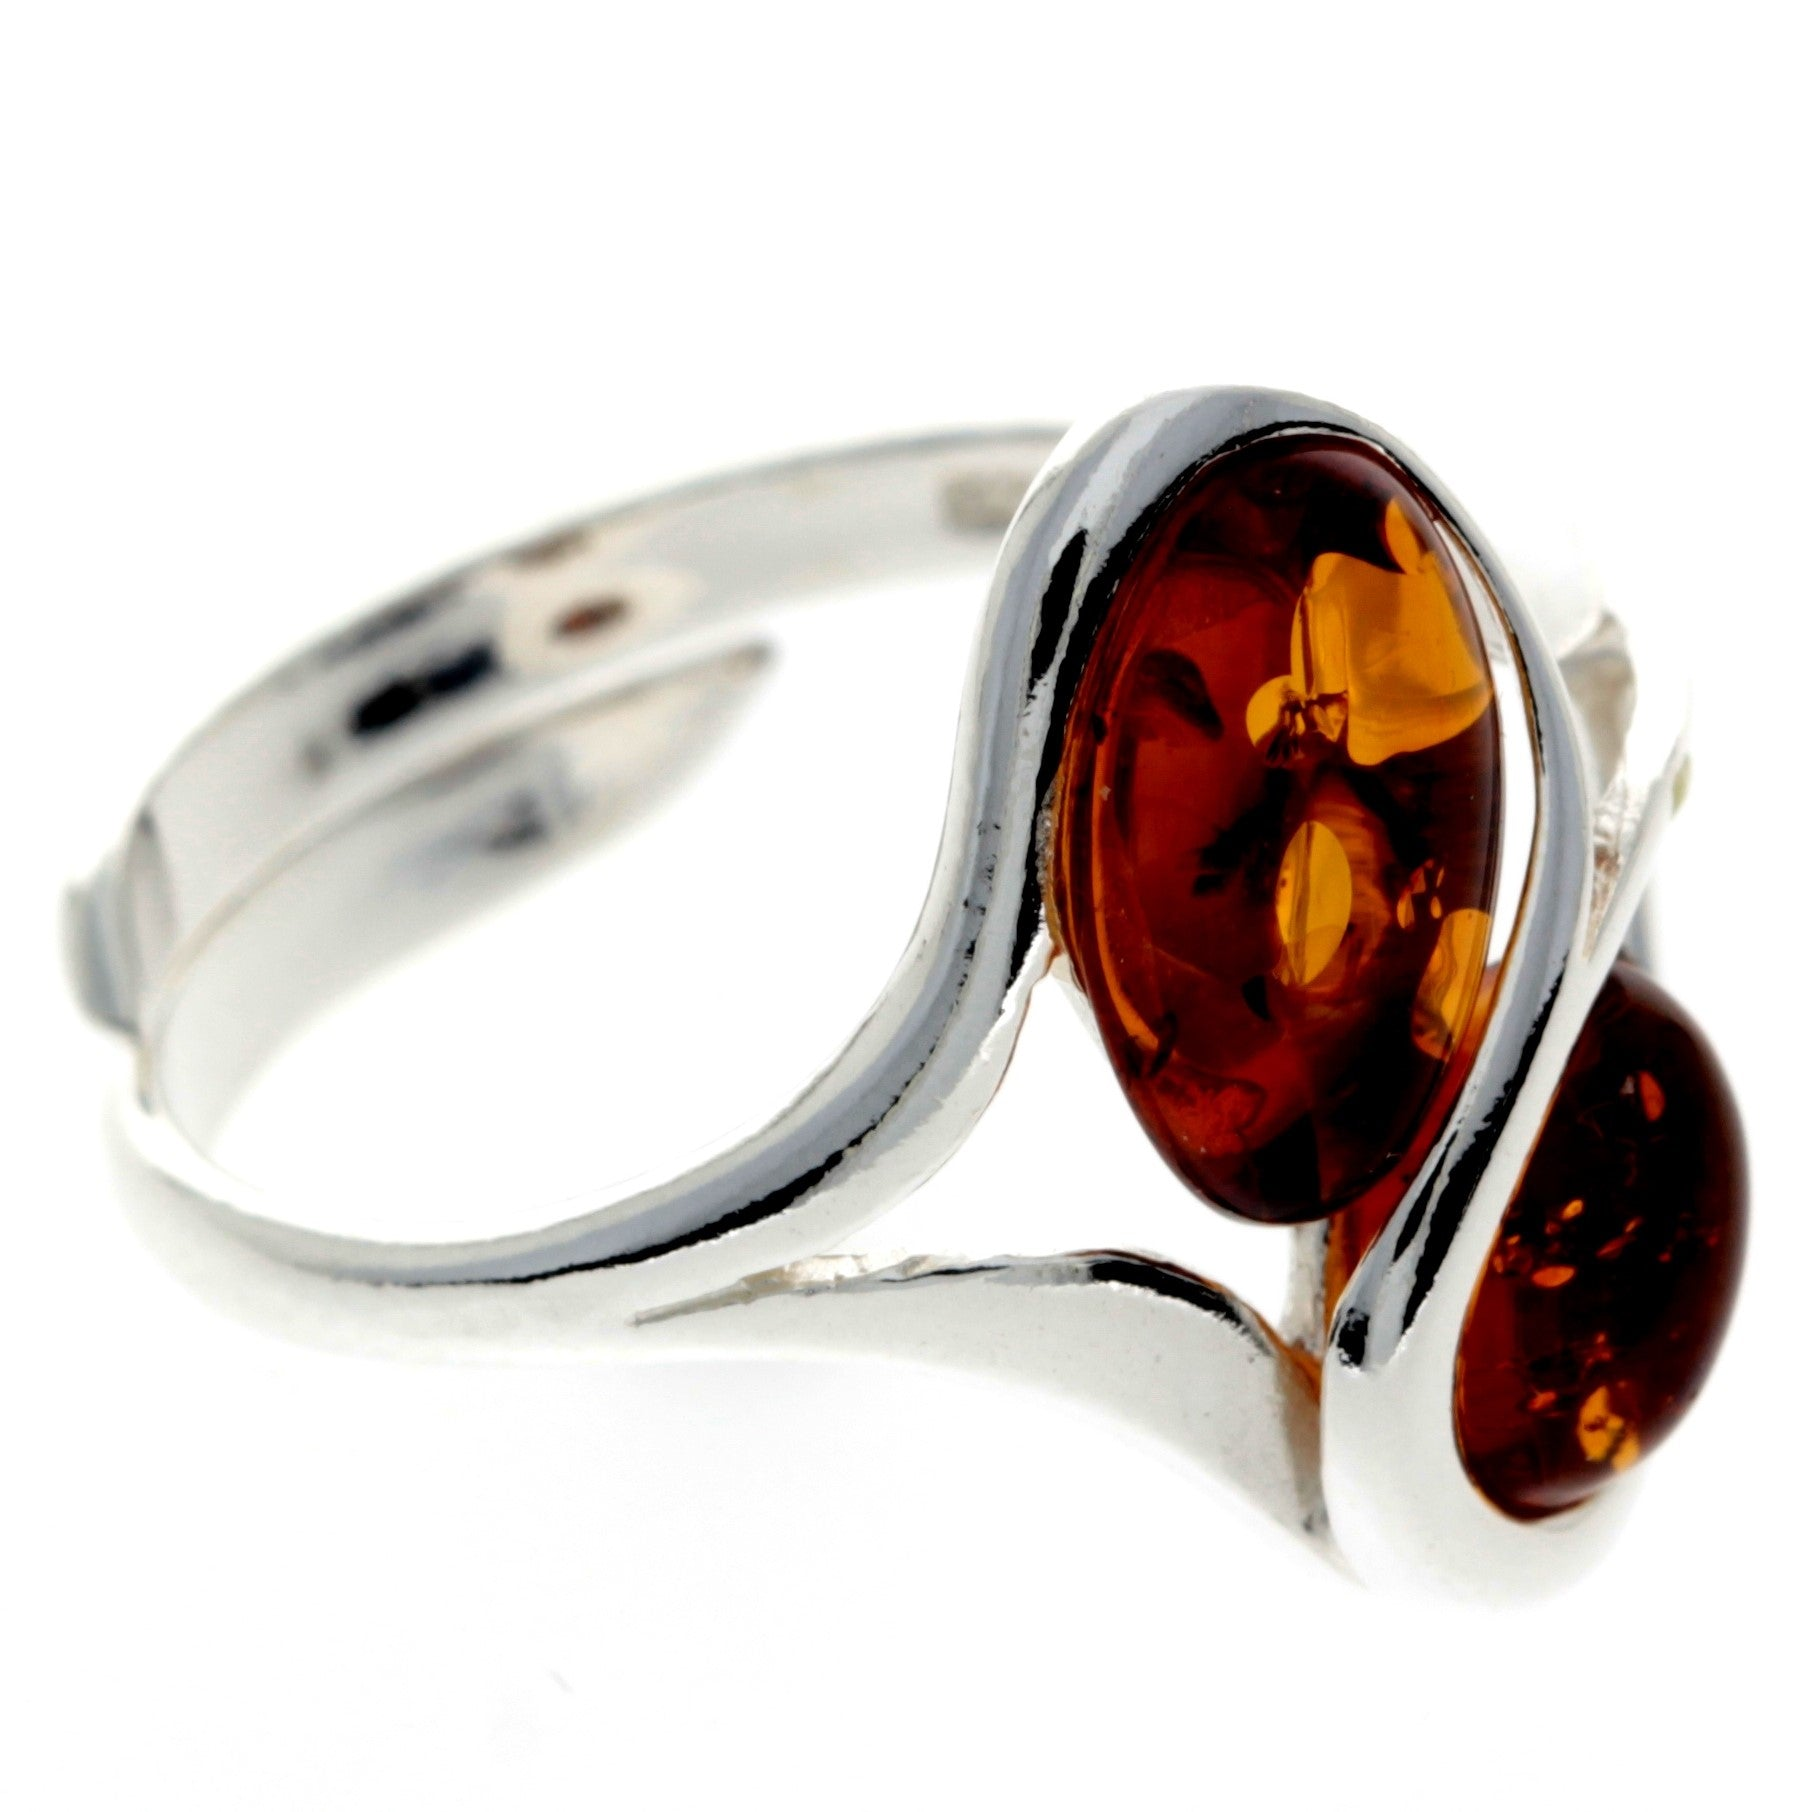 925 Sterling Silver & Baltic Amber Modern Adjustable Ring - GL405